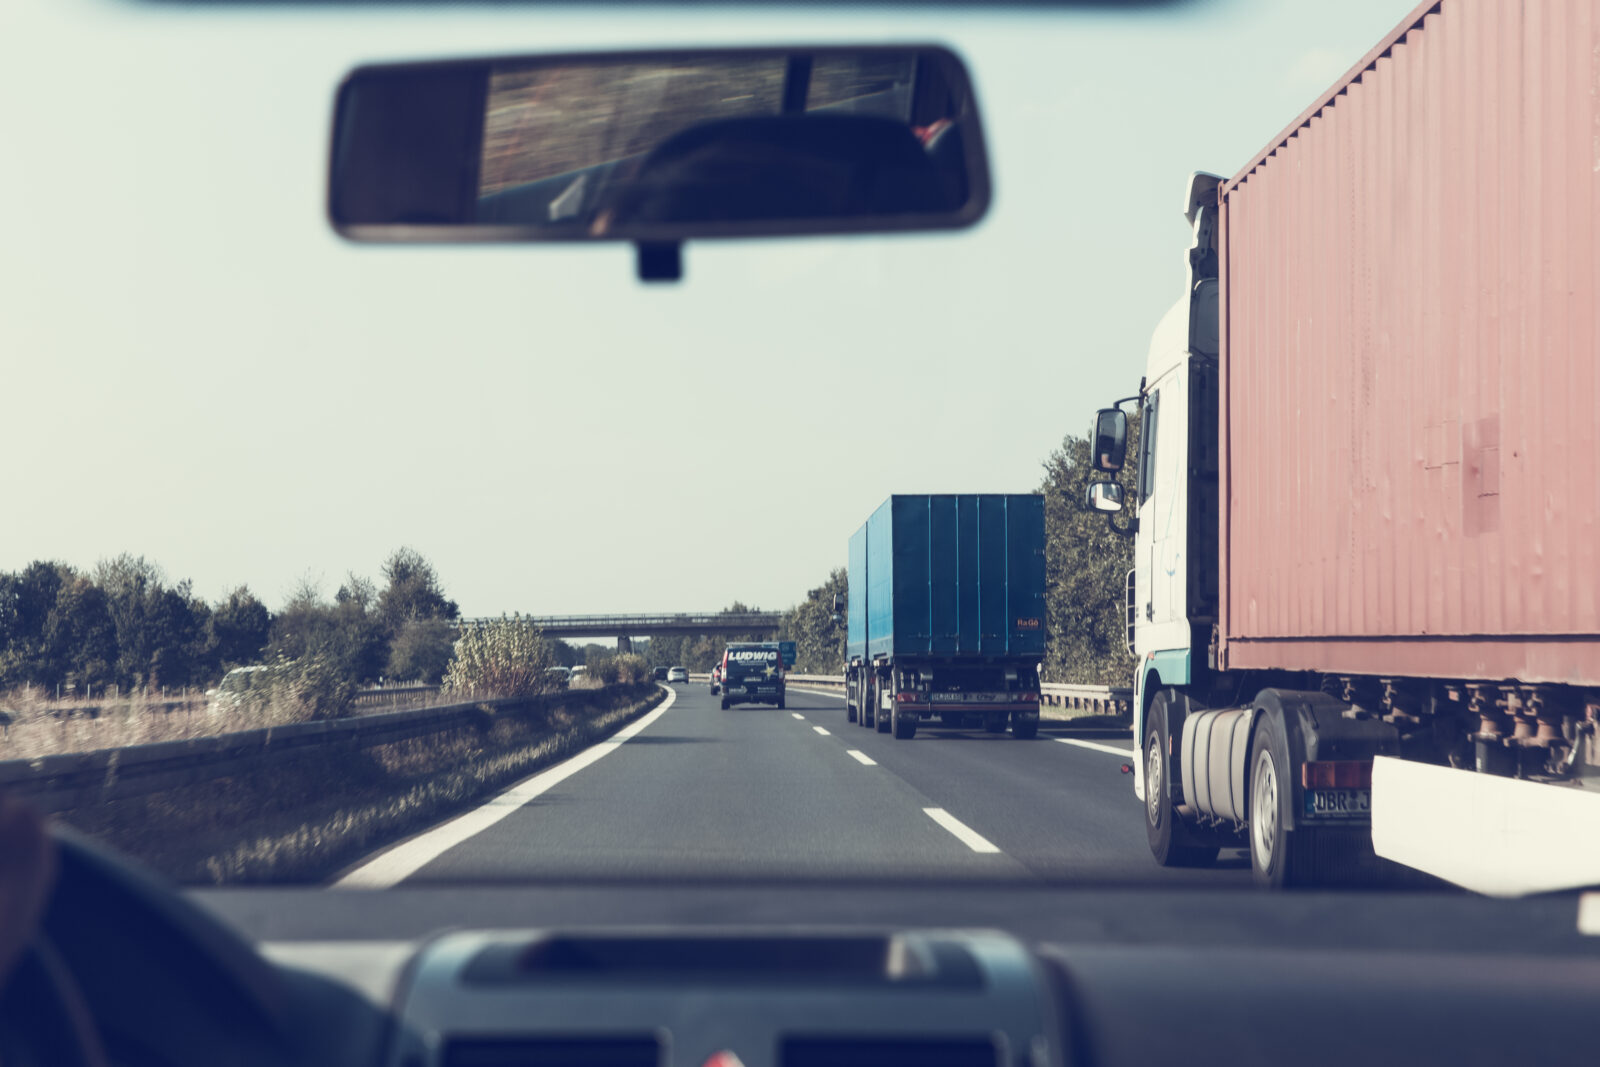 NHTSA Compliance Assistance Program Aims to Help Improve Highway Safety